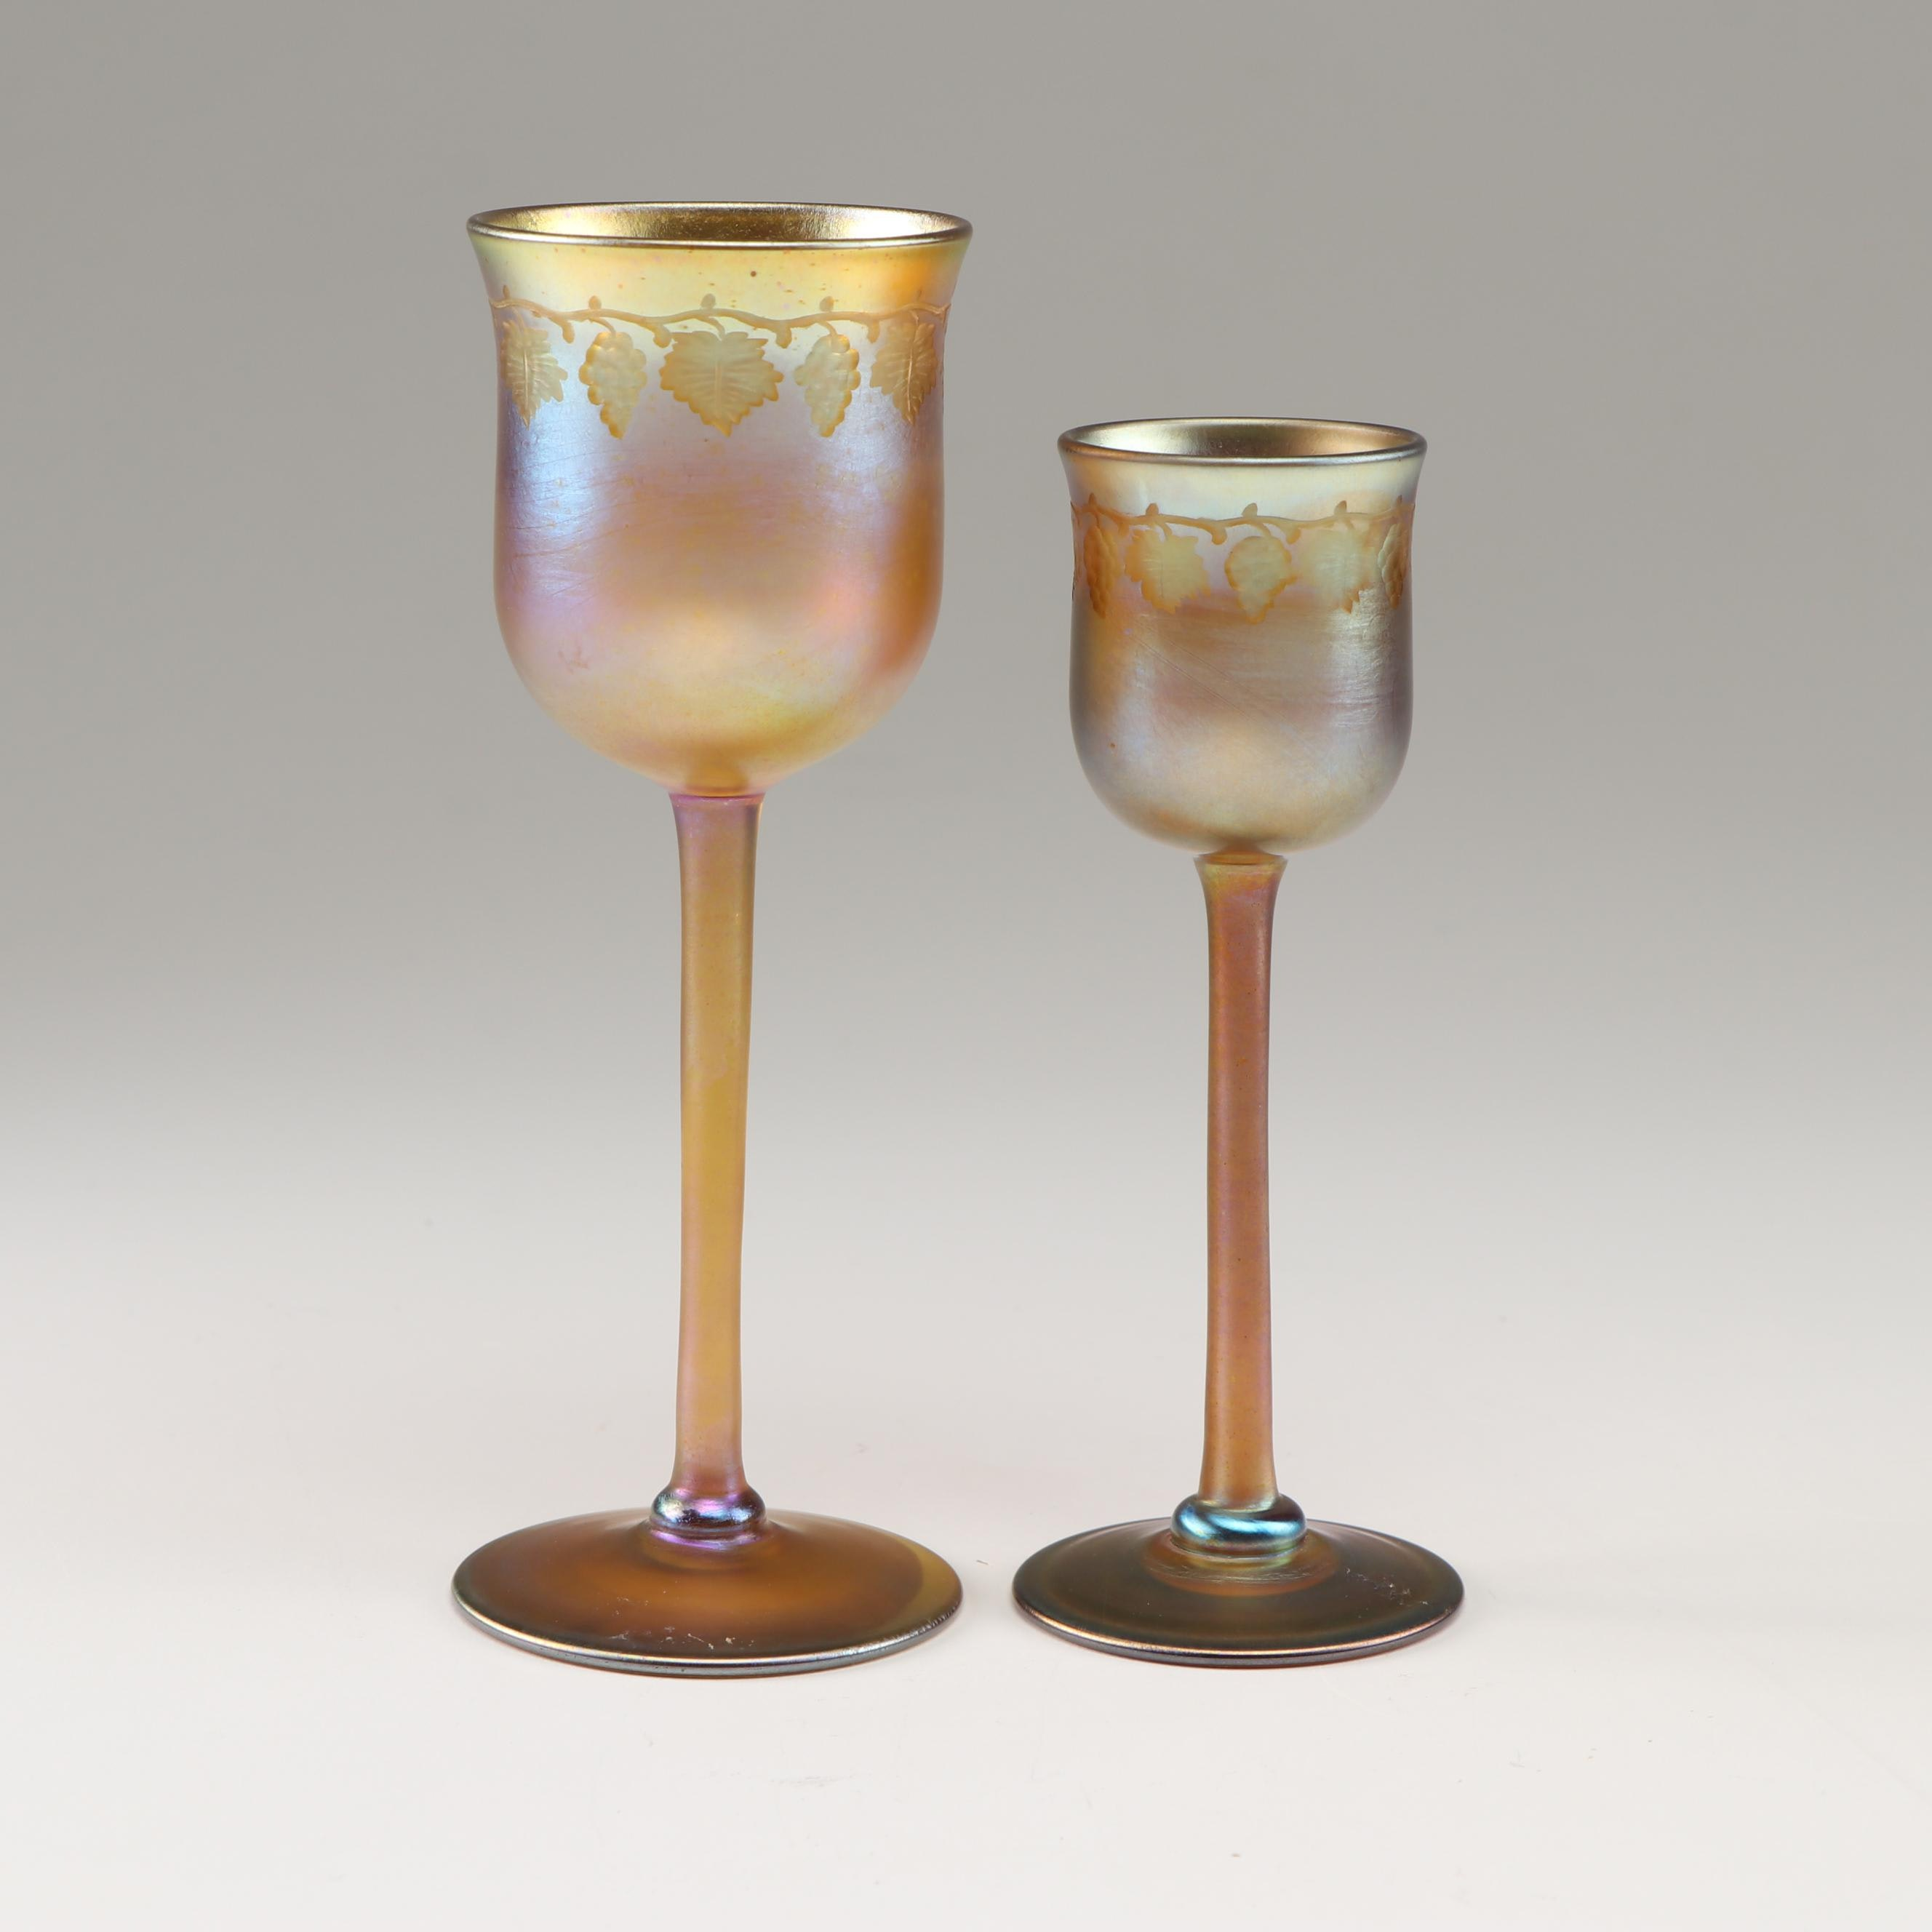 L.C. Tiffany Gold Favrille Wheel Cut Grapes Leaves Stemmed Cordial Glasses